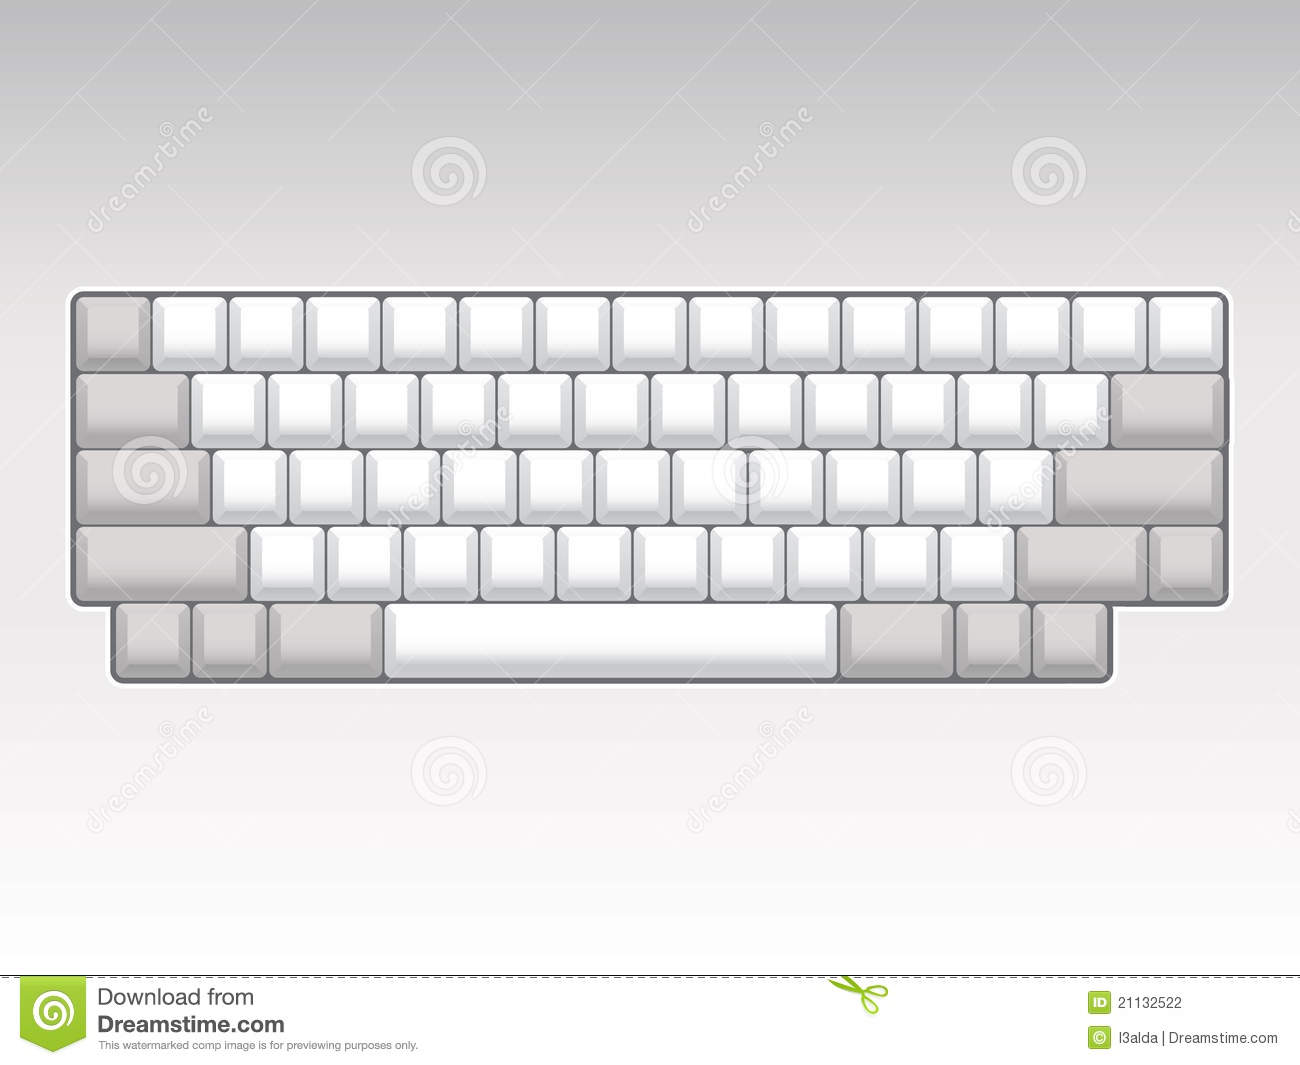 Keys stock illustrations layout. Blank computer keyboard clipart